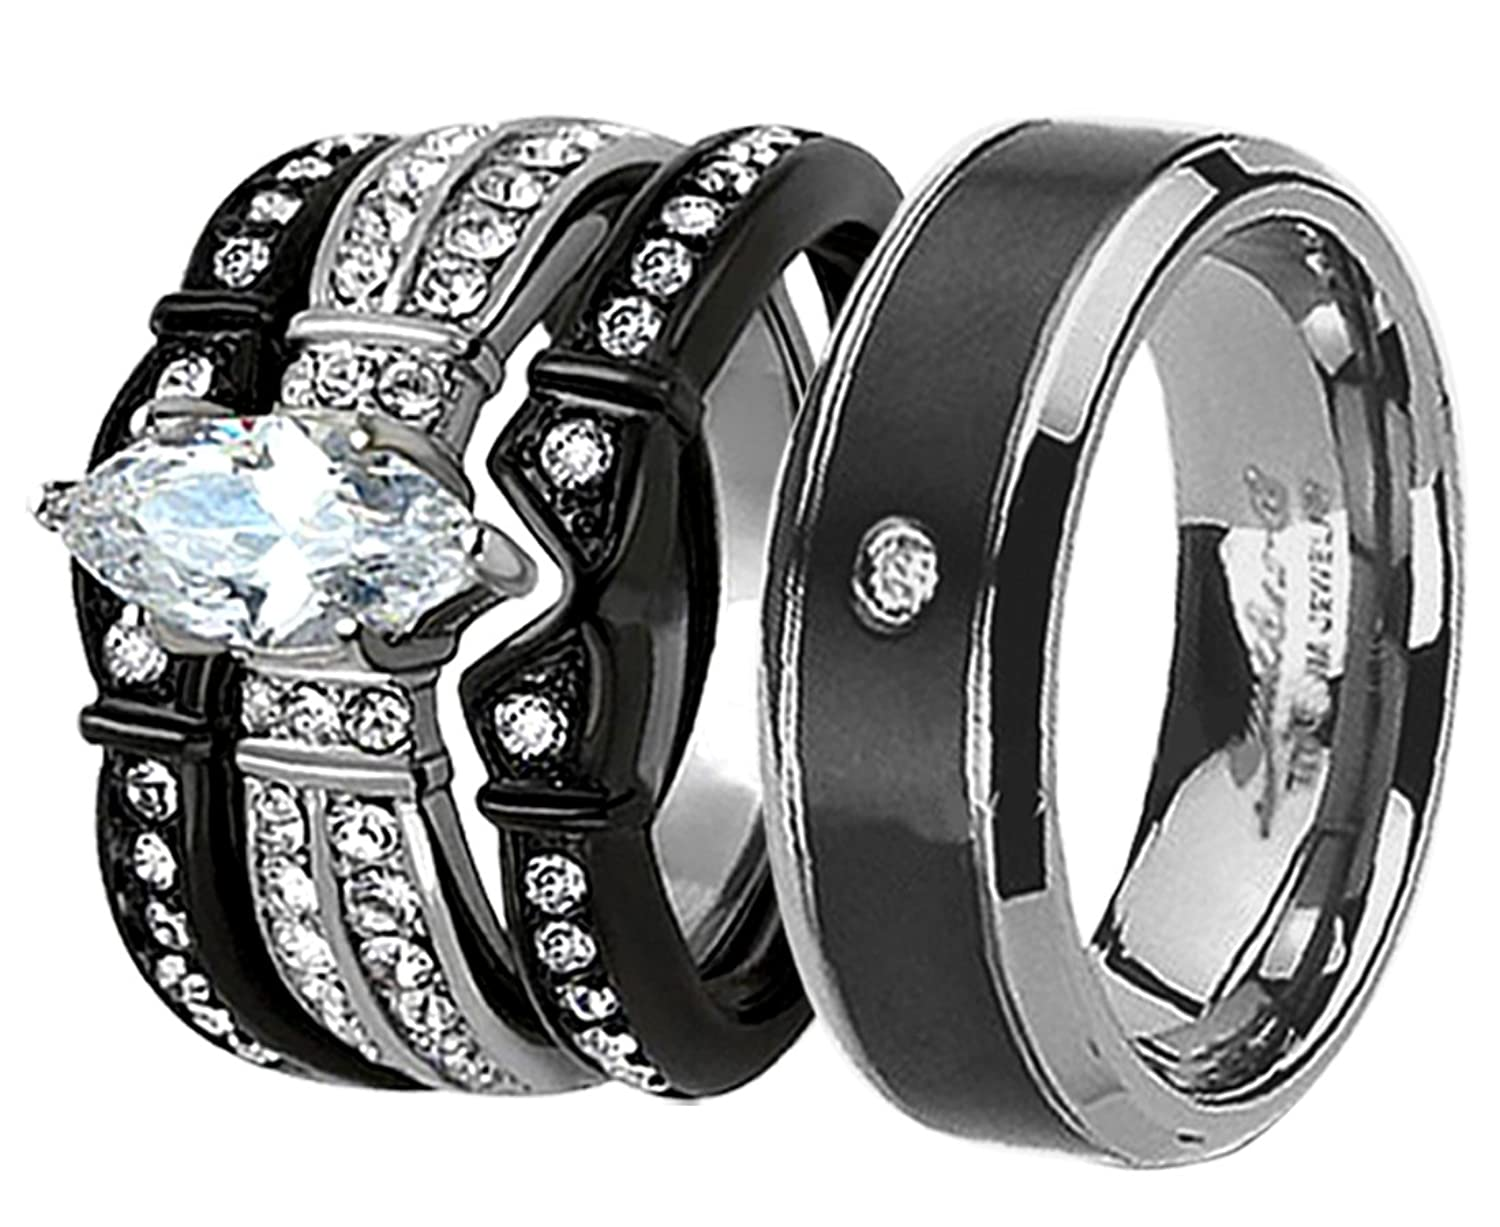 amazoncom his and hers wedding ring sets couples matching rings black womens stainless steel cubic zirconia wedding engagement ring bridal sets mens - Titanium Wedding Ring Sets